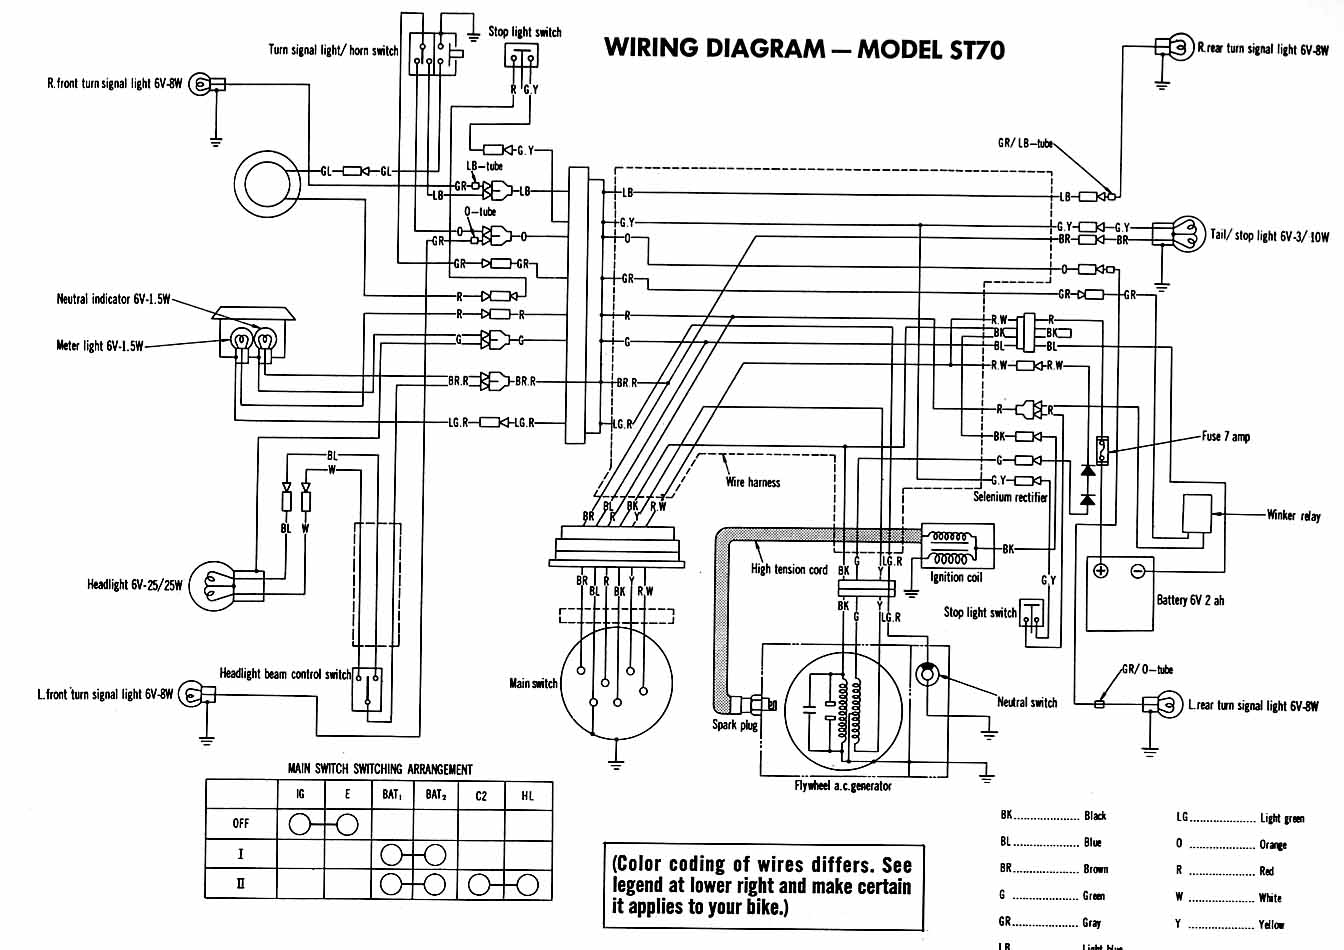 Honda ST70 Electrical Wiring Diagram?resize=665%2C470 jvc kd g340 wiring diagram the best wiring diagram 2017 jvc kd g340 wiring diagram at readyjetset.co